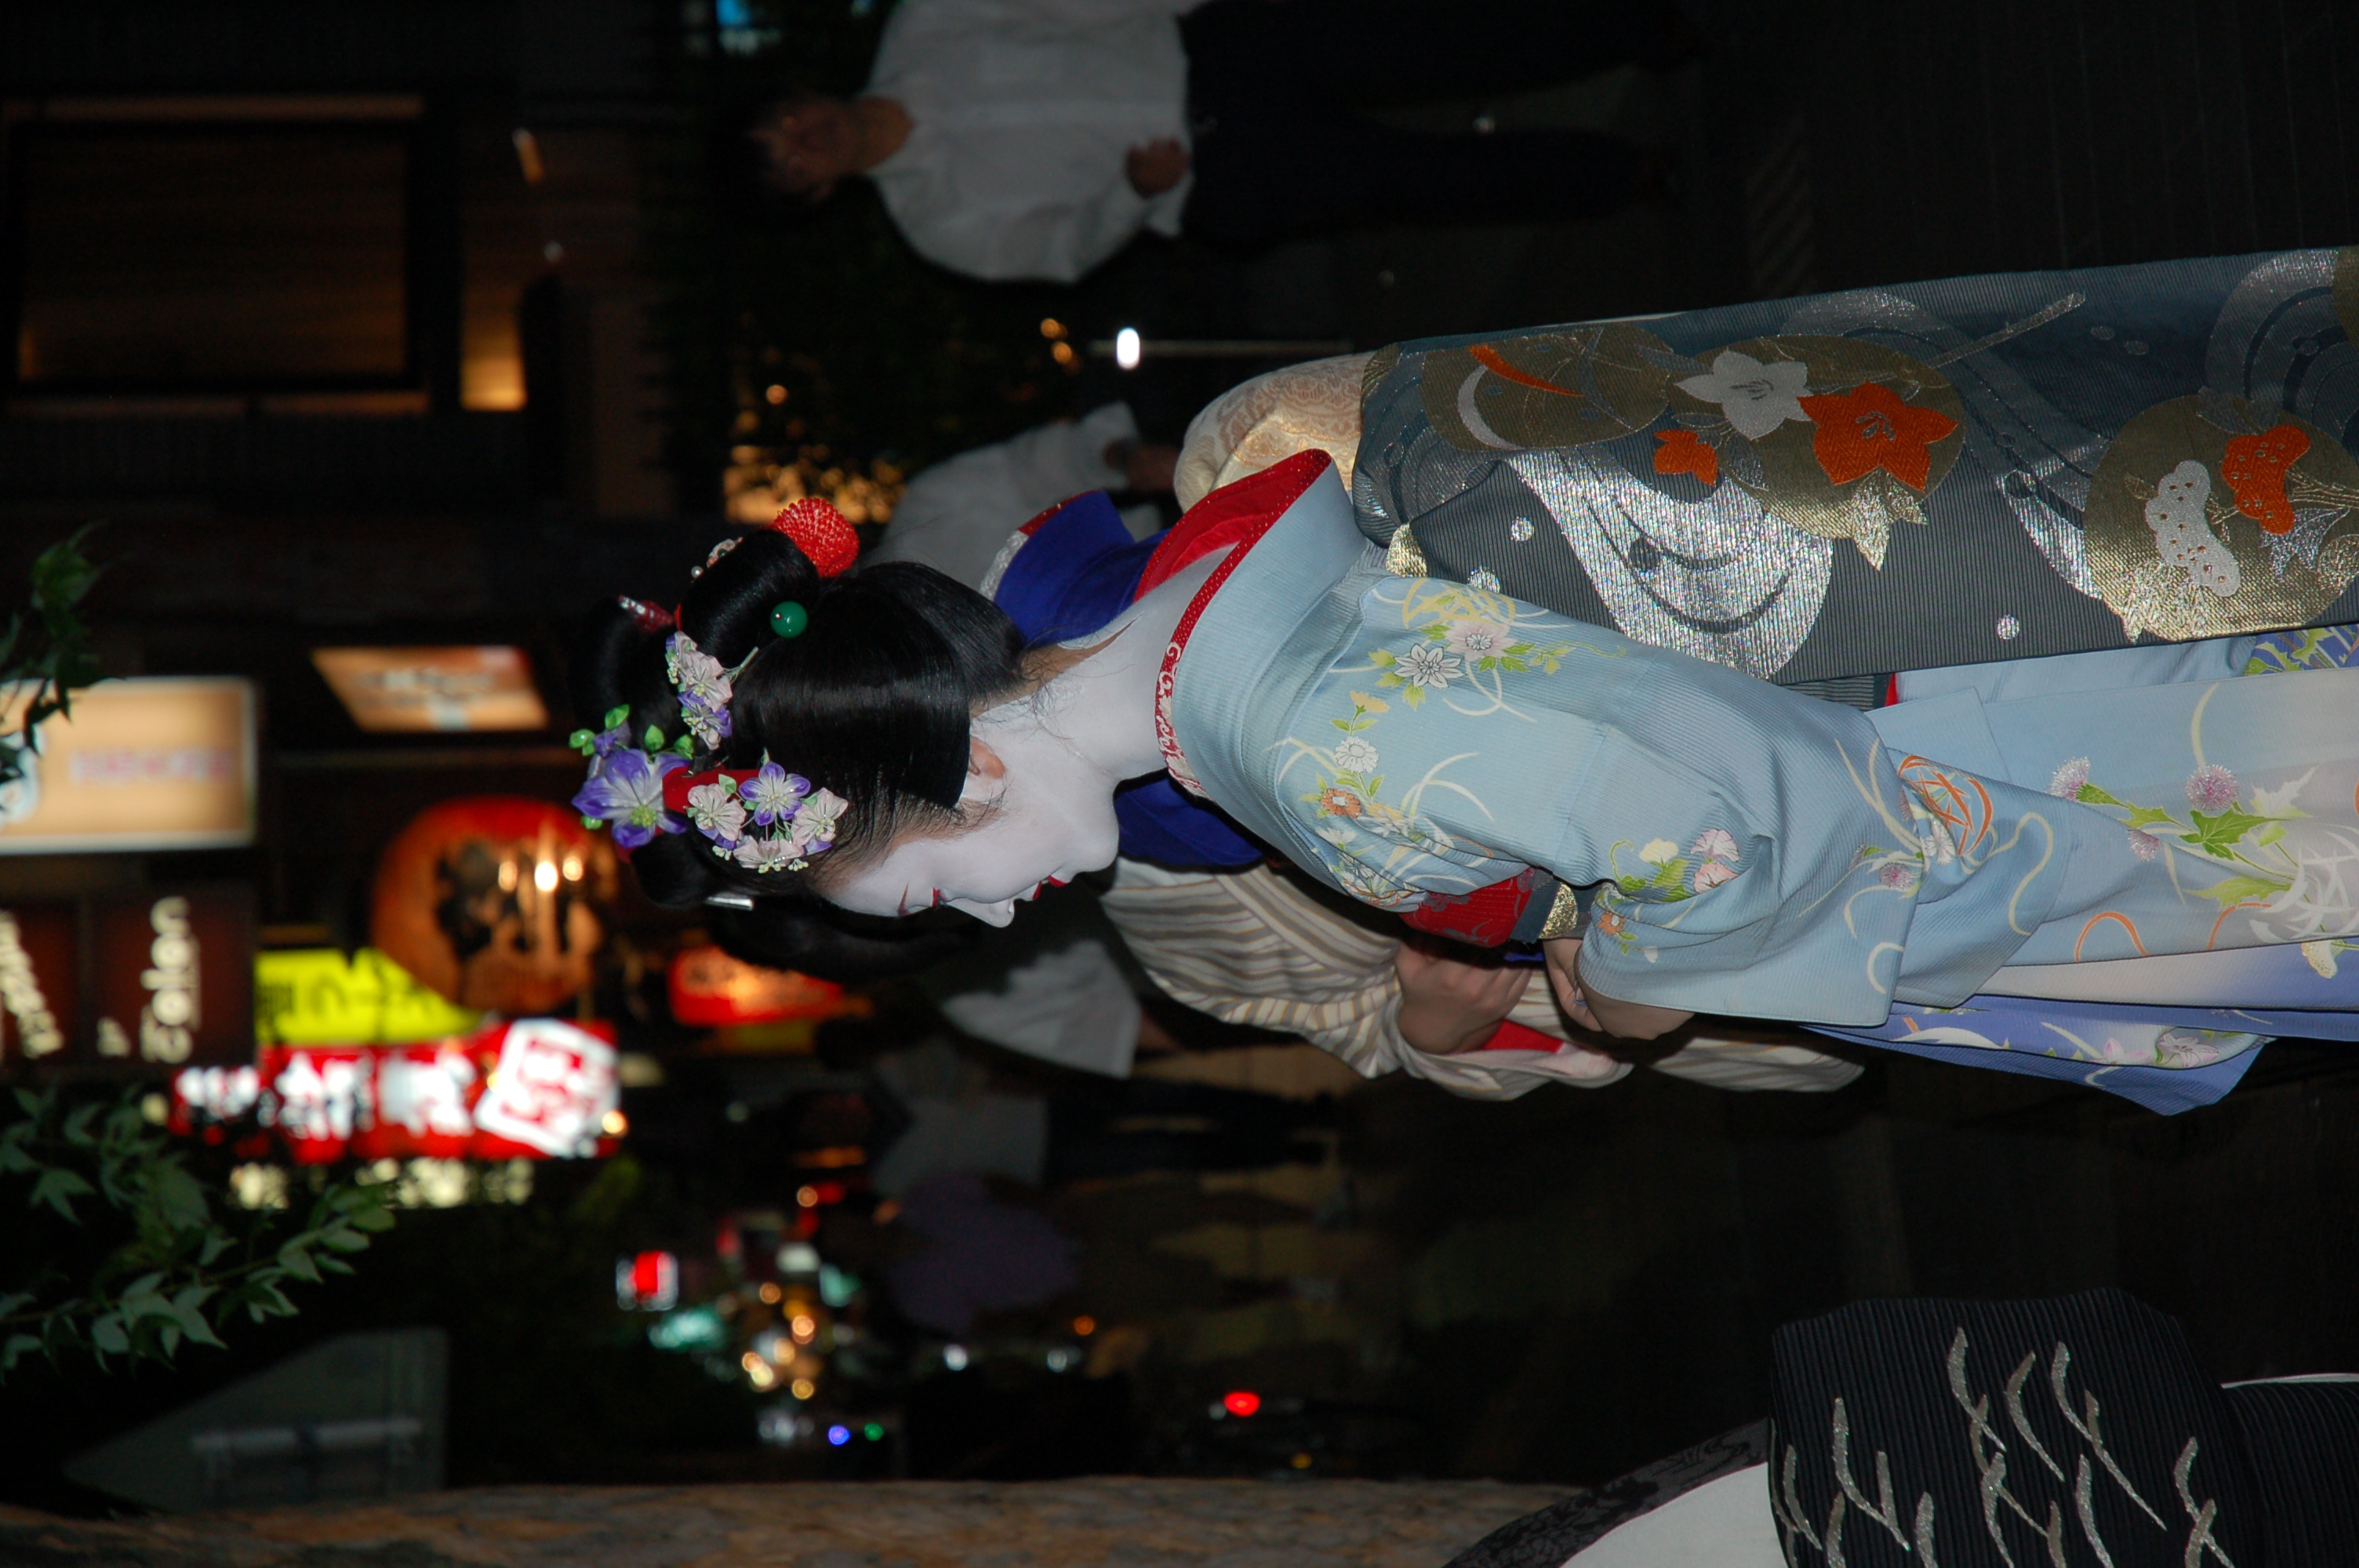 Geishas on the street. Geisha's are not as easy to find as you might hope. We were lucky to spot this group sending off the male patrons. They usually go from their homes to the teahouse in a taxi and stay there until going back home, so you have to catch them traveling between spots. They are not interested in getting their pictures taken and usually hide from prying eyes, but this group was openly standing on the street around a large group of on-lookers.